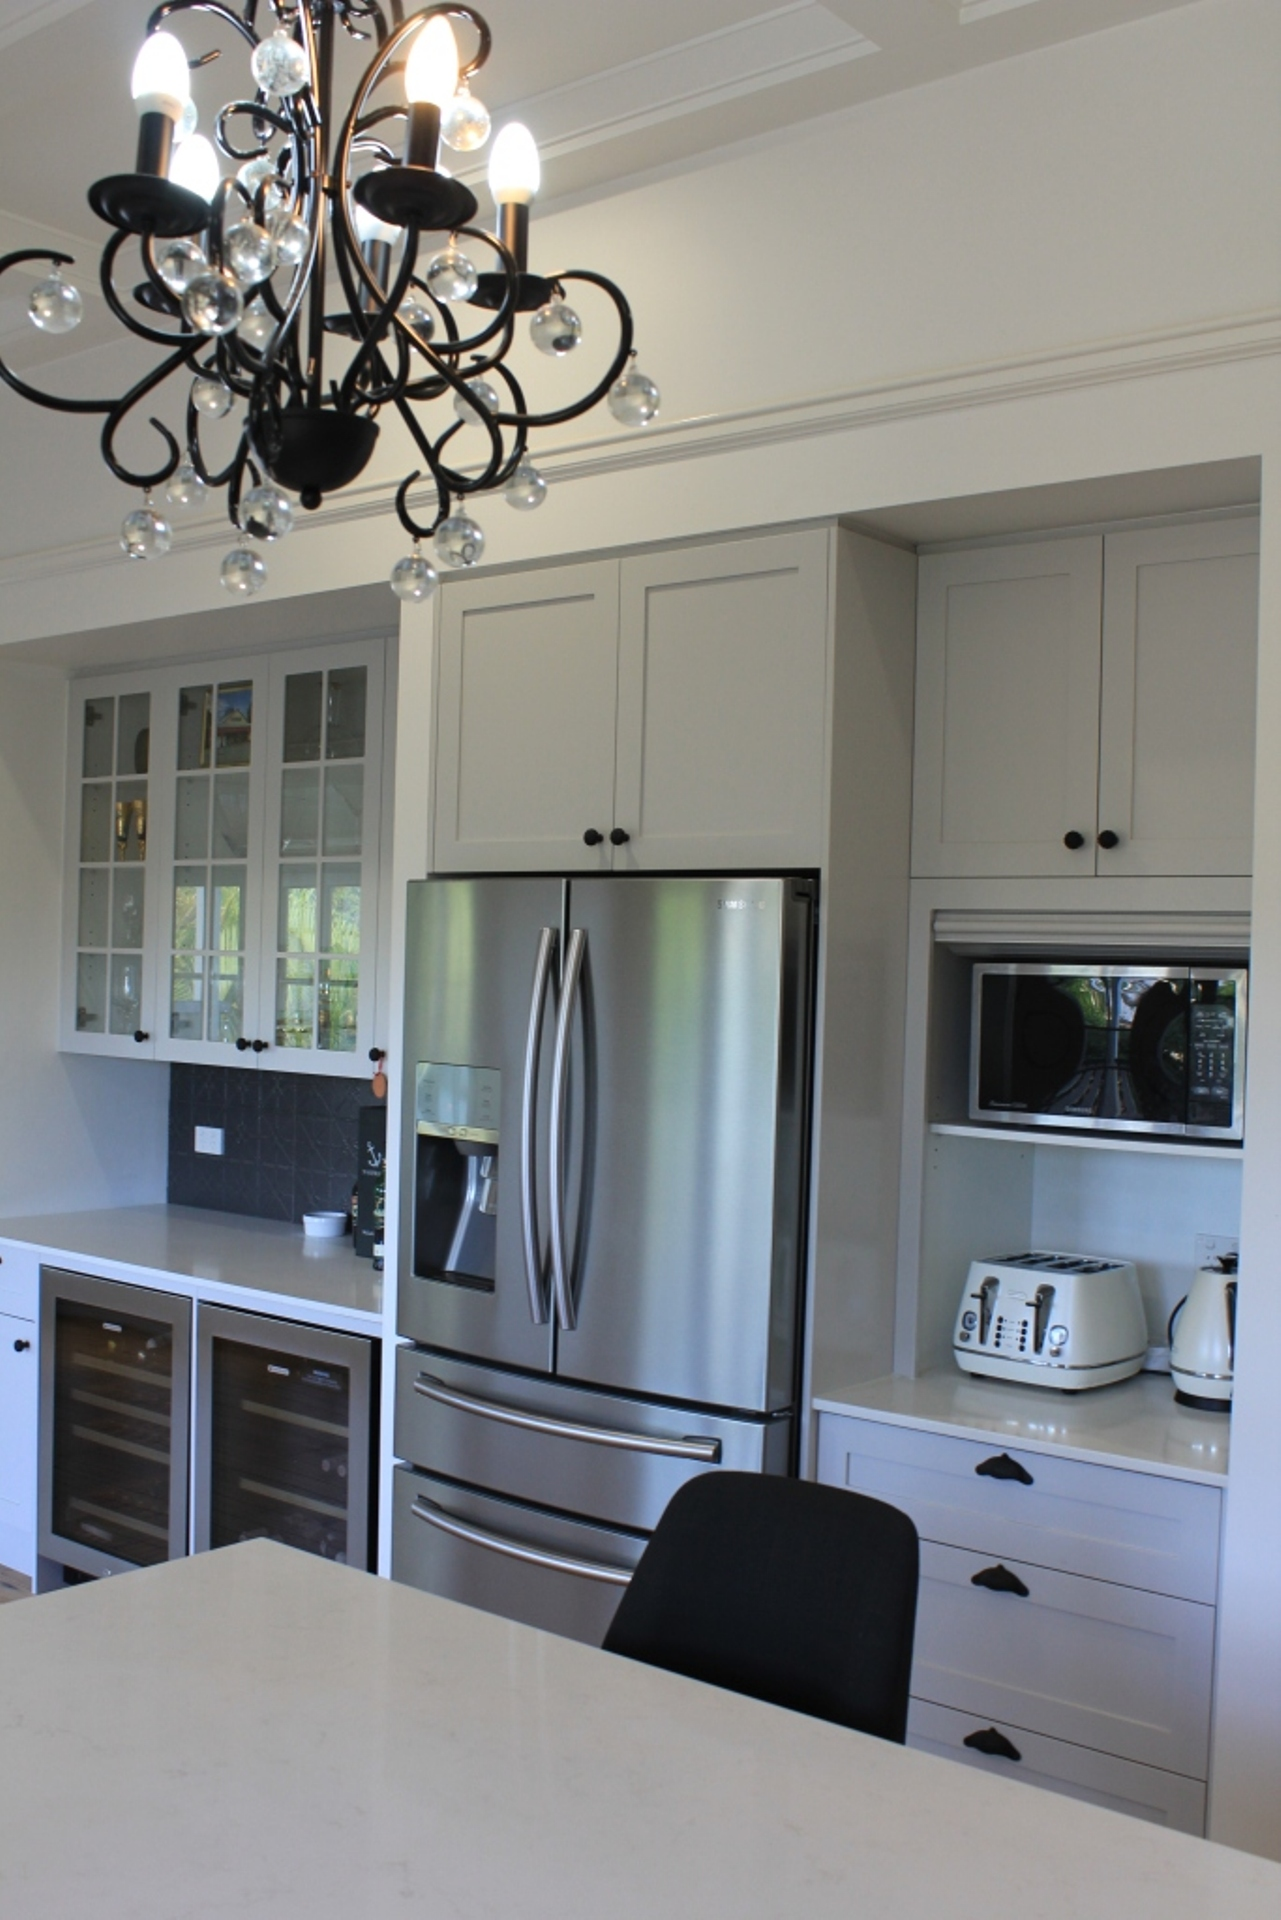 Brisbane Kitchen Design Gizeh St Grey Shaker Style Kitchen Enoggera (6)